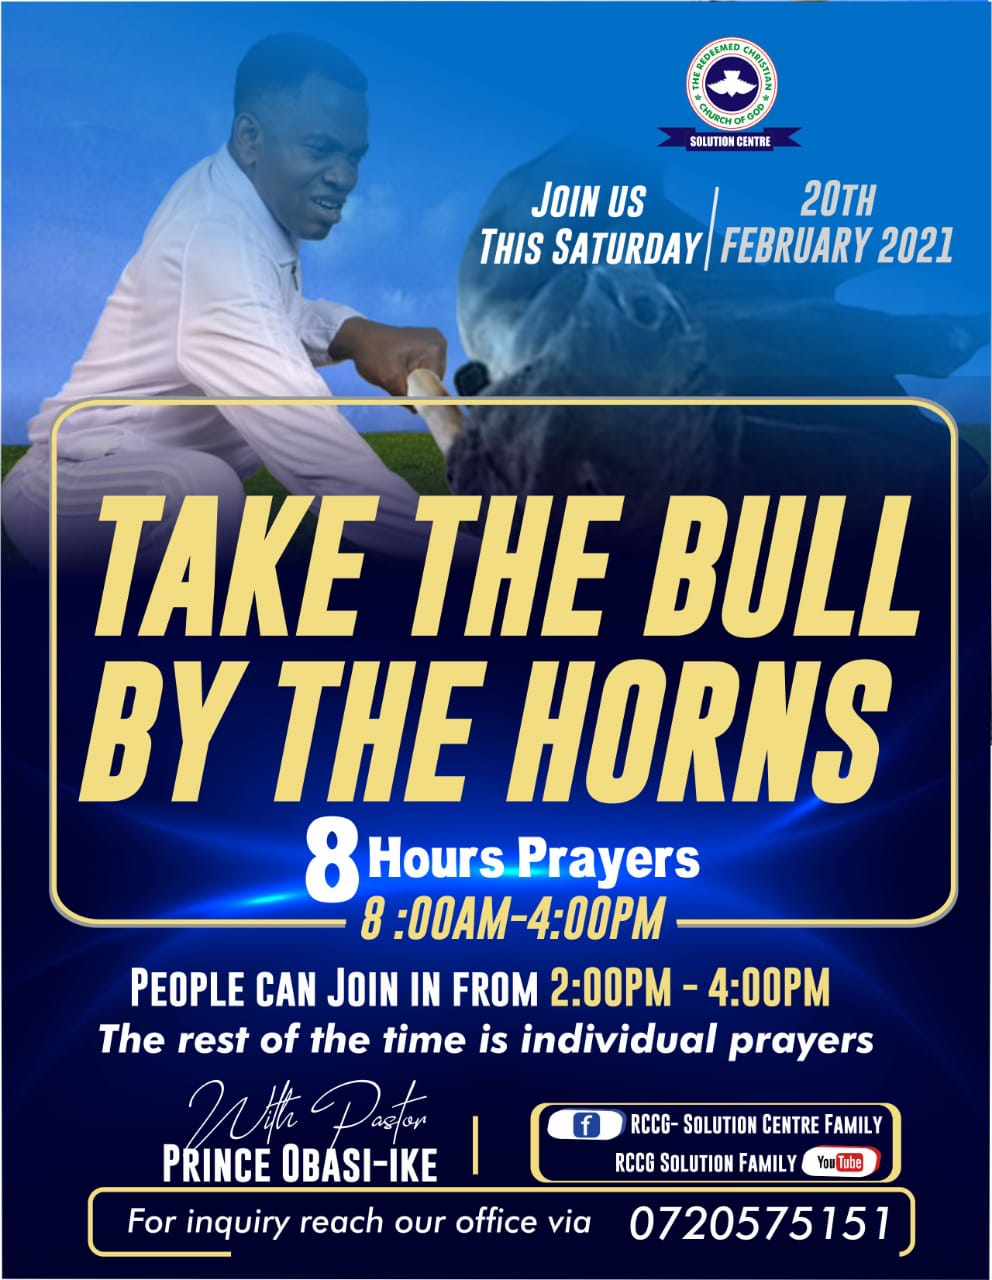 Take the bull by the horns